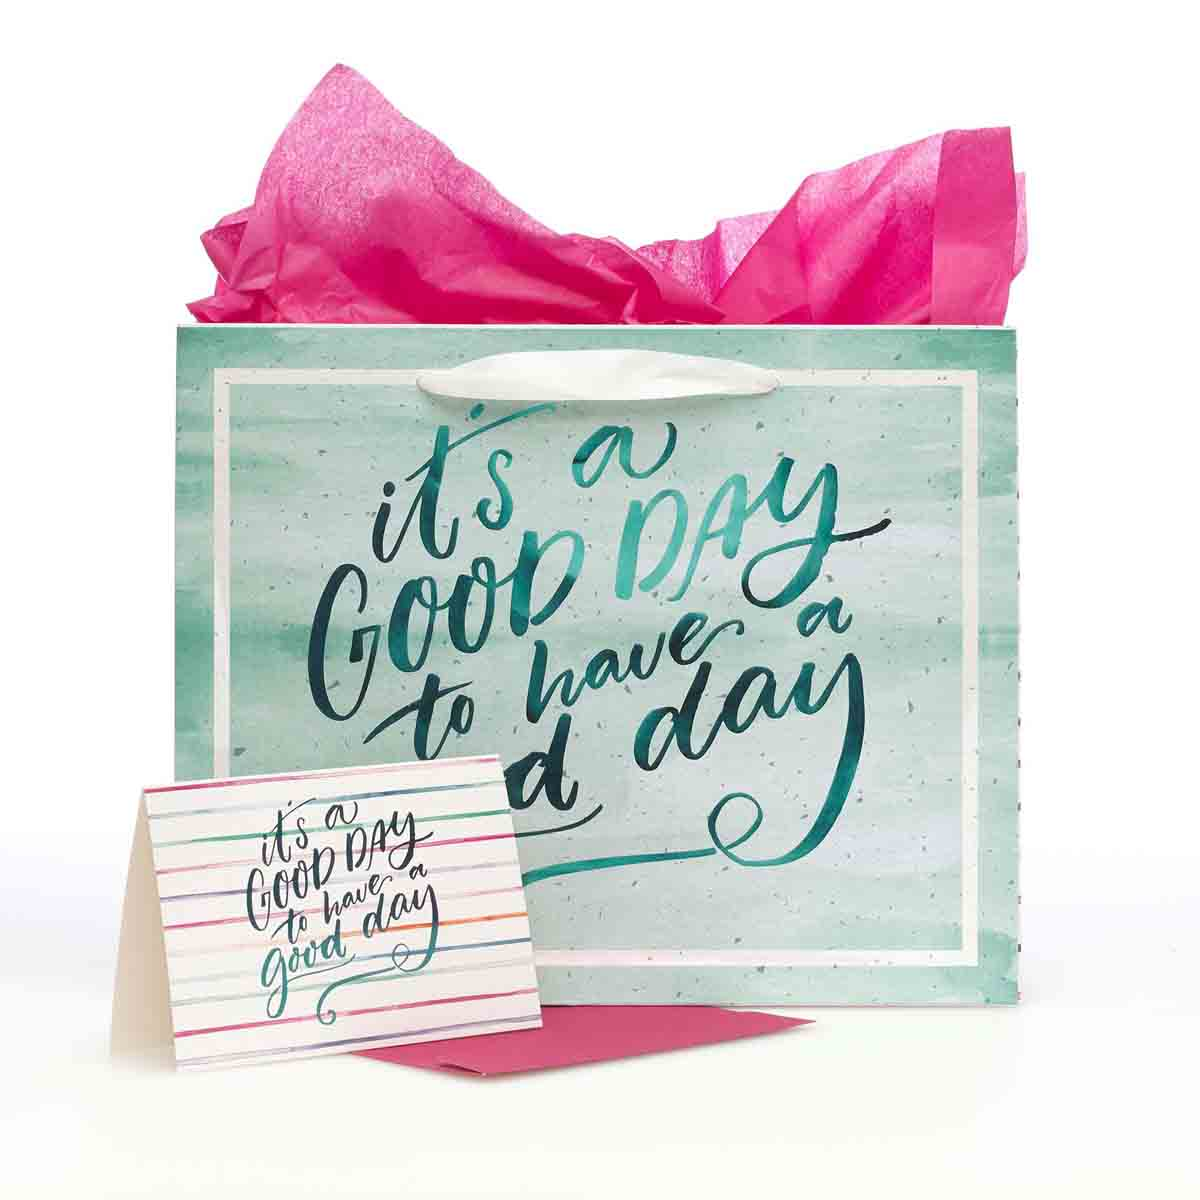 It's A Good Day To Have A Good Day (Gift Bag With Card)